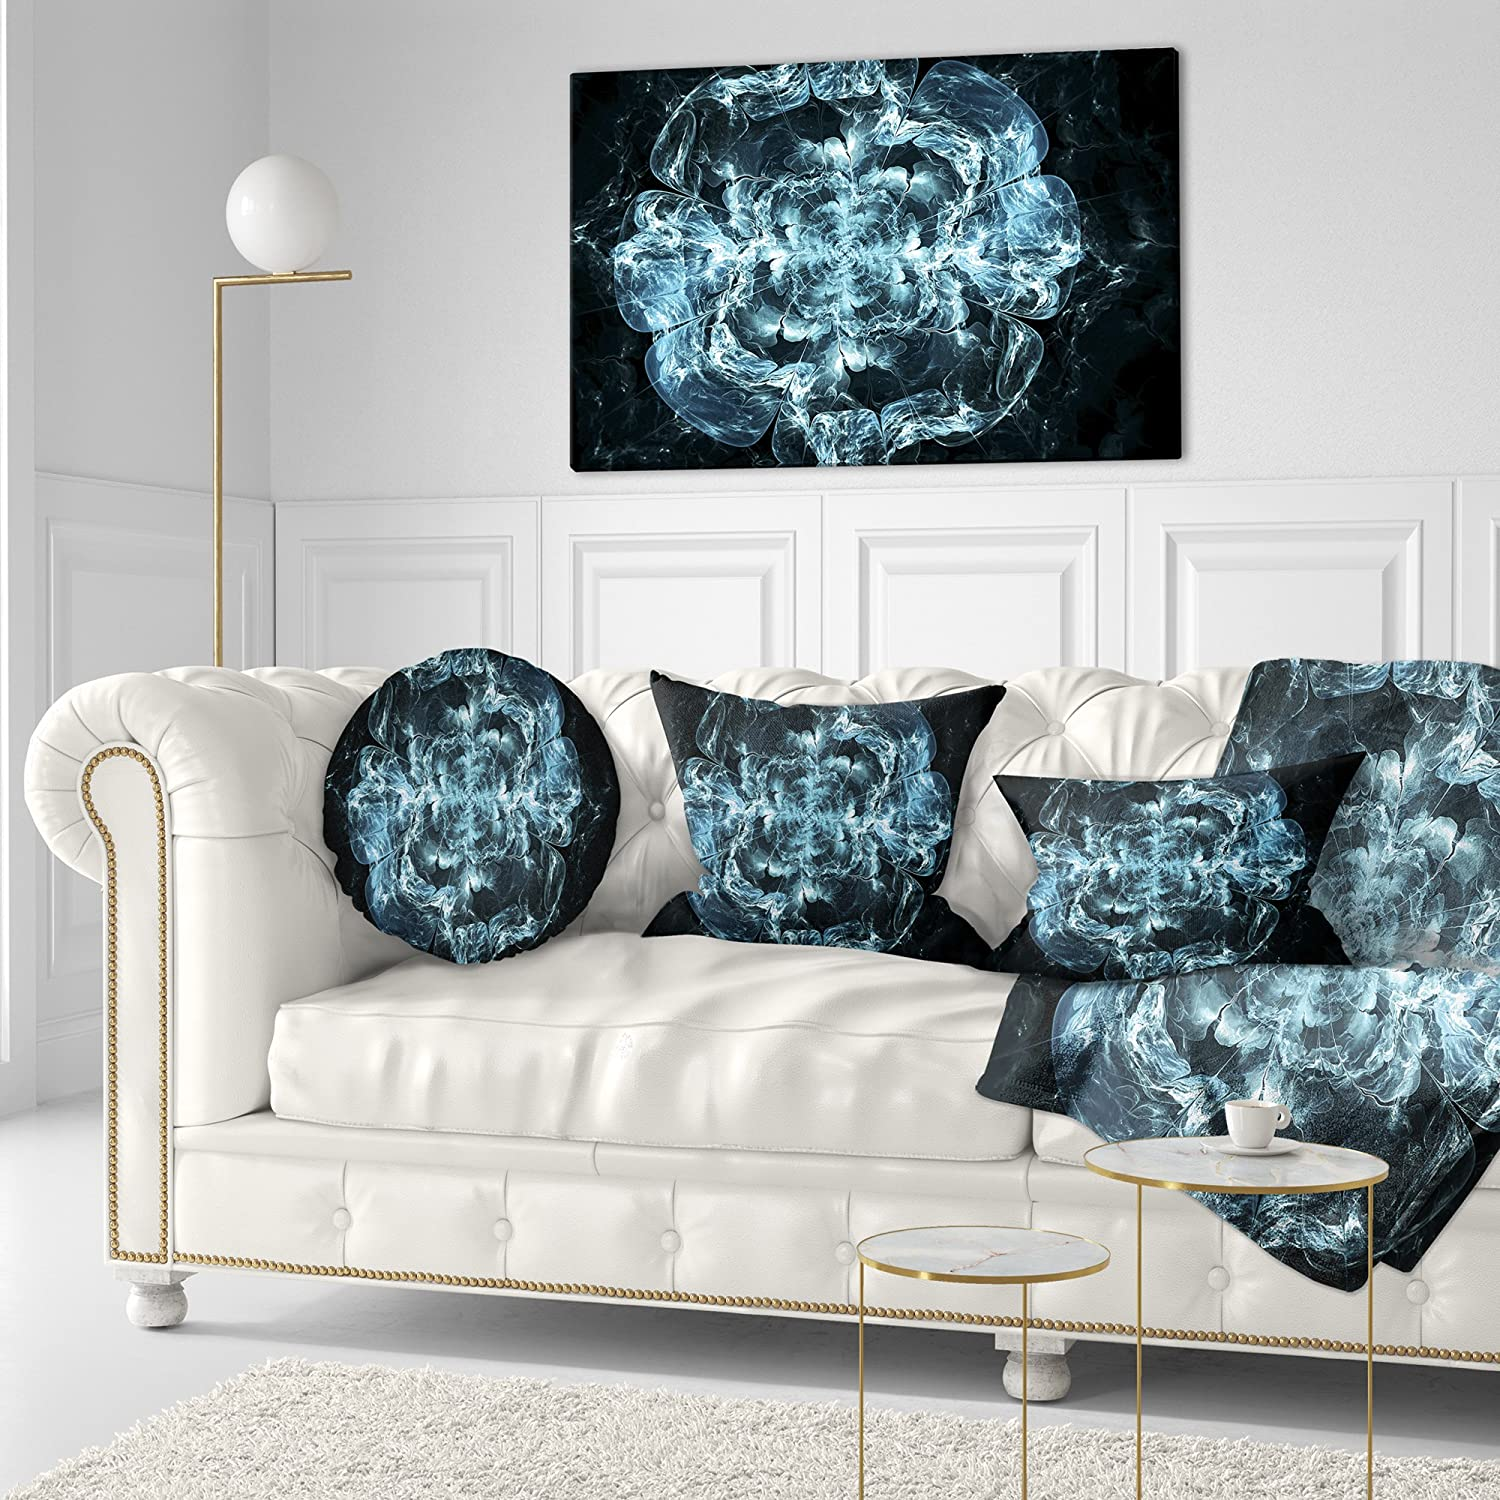 12 in Designart CU8697-12-20 Fractal Blue Flower Explosion Floral Throw Lumbar Cushion Pillow Cover for Living Room x 20 in. Sofa